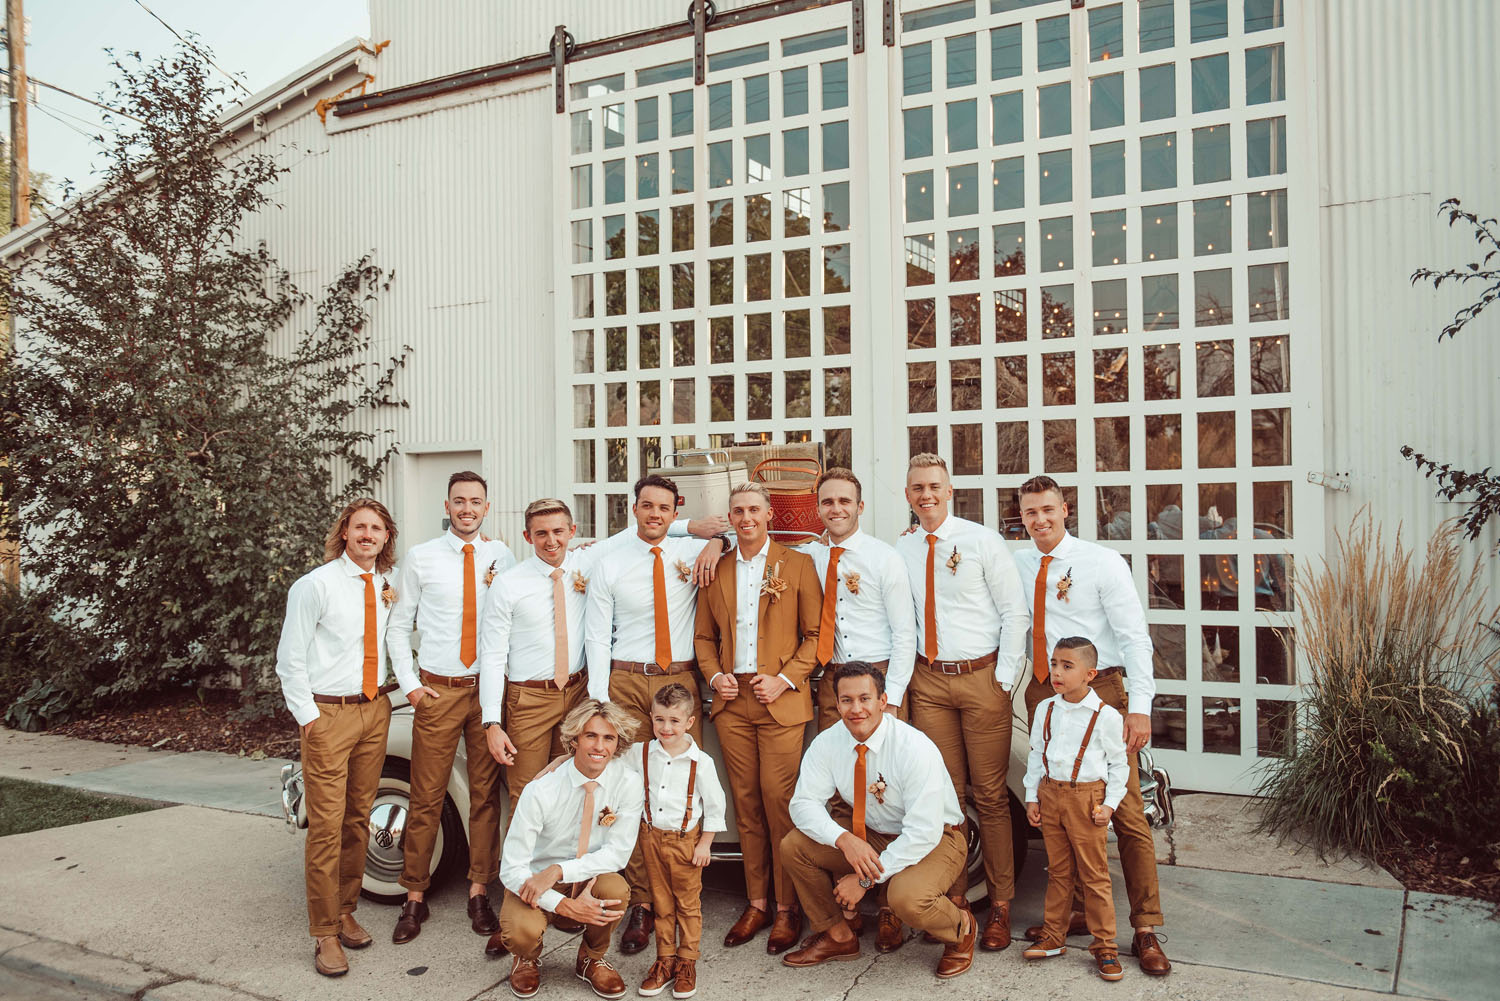 Groomsmen in Rust Ties